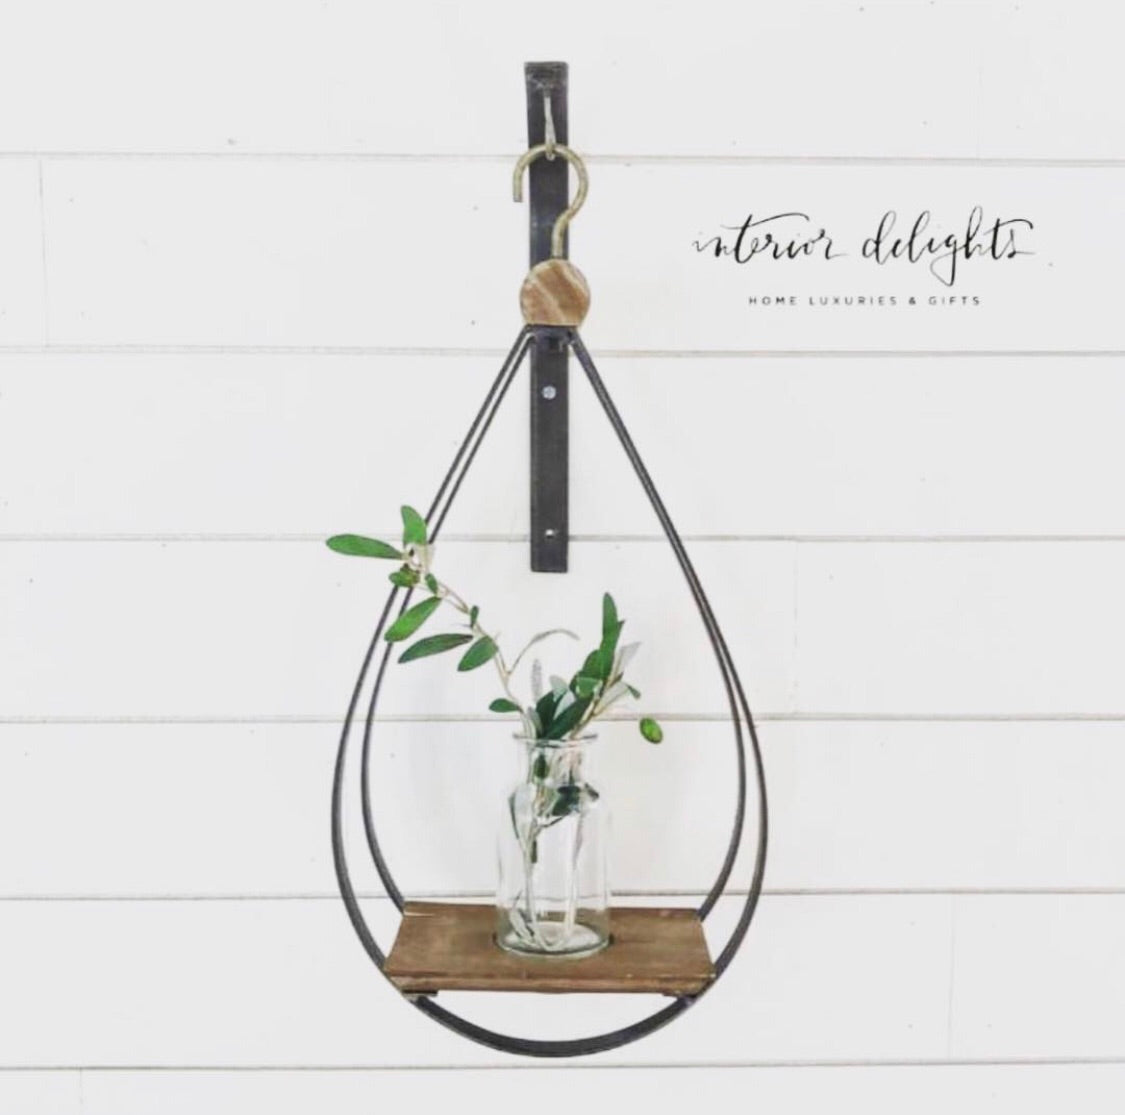 Teardrop Hanging Bottle Holder - Interior Delights